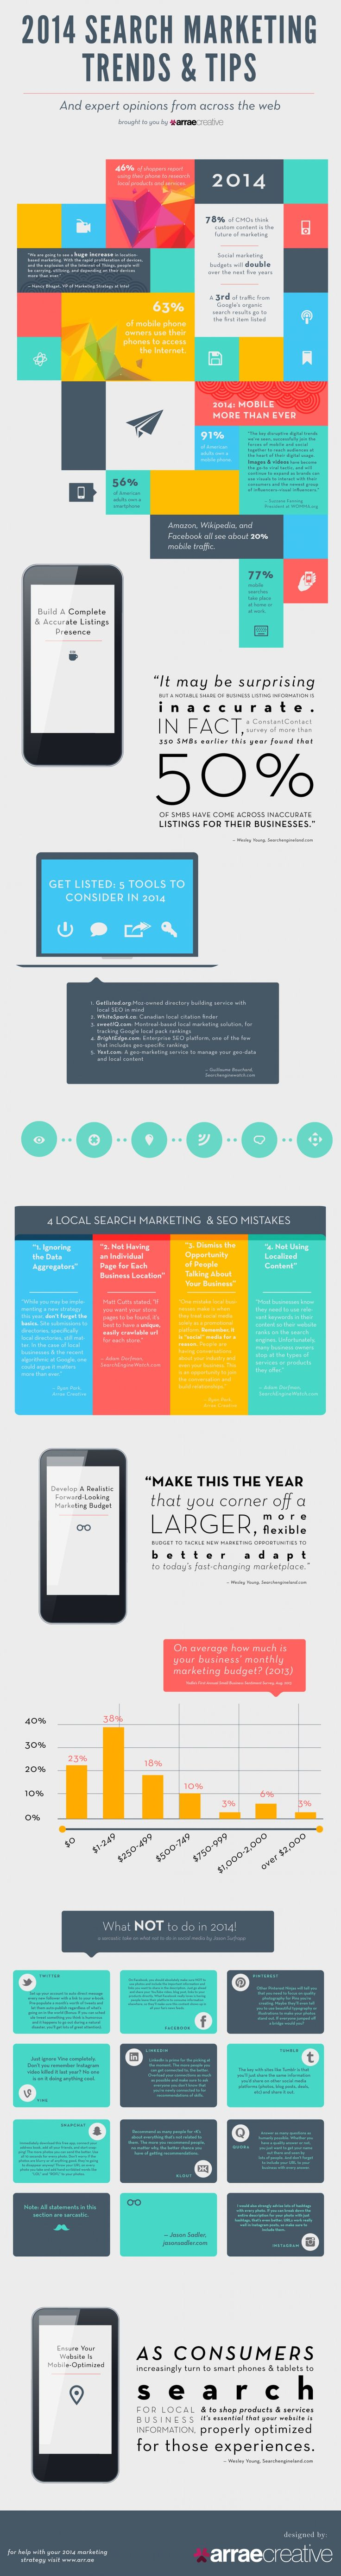 2014 Search #Marketing Trends & Tips